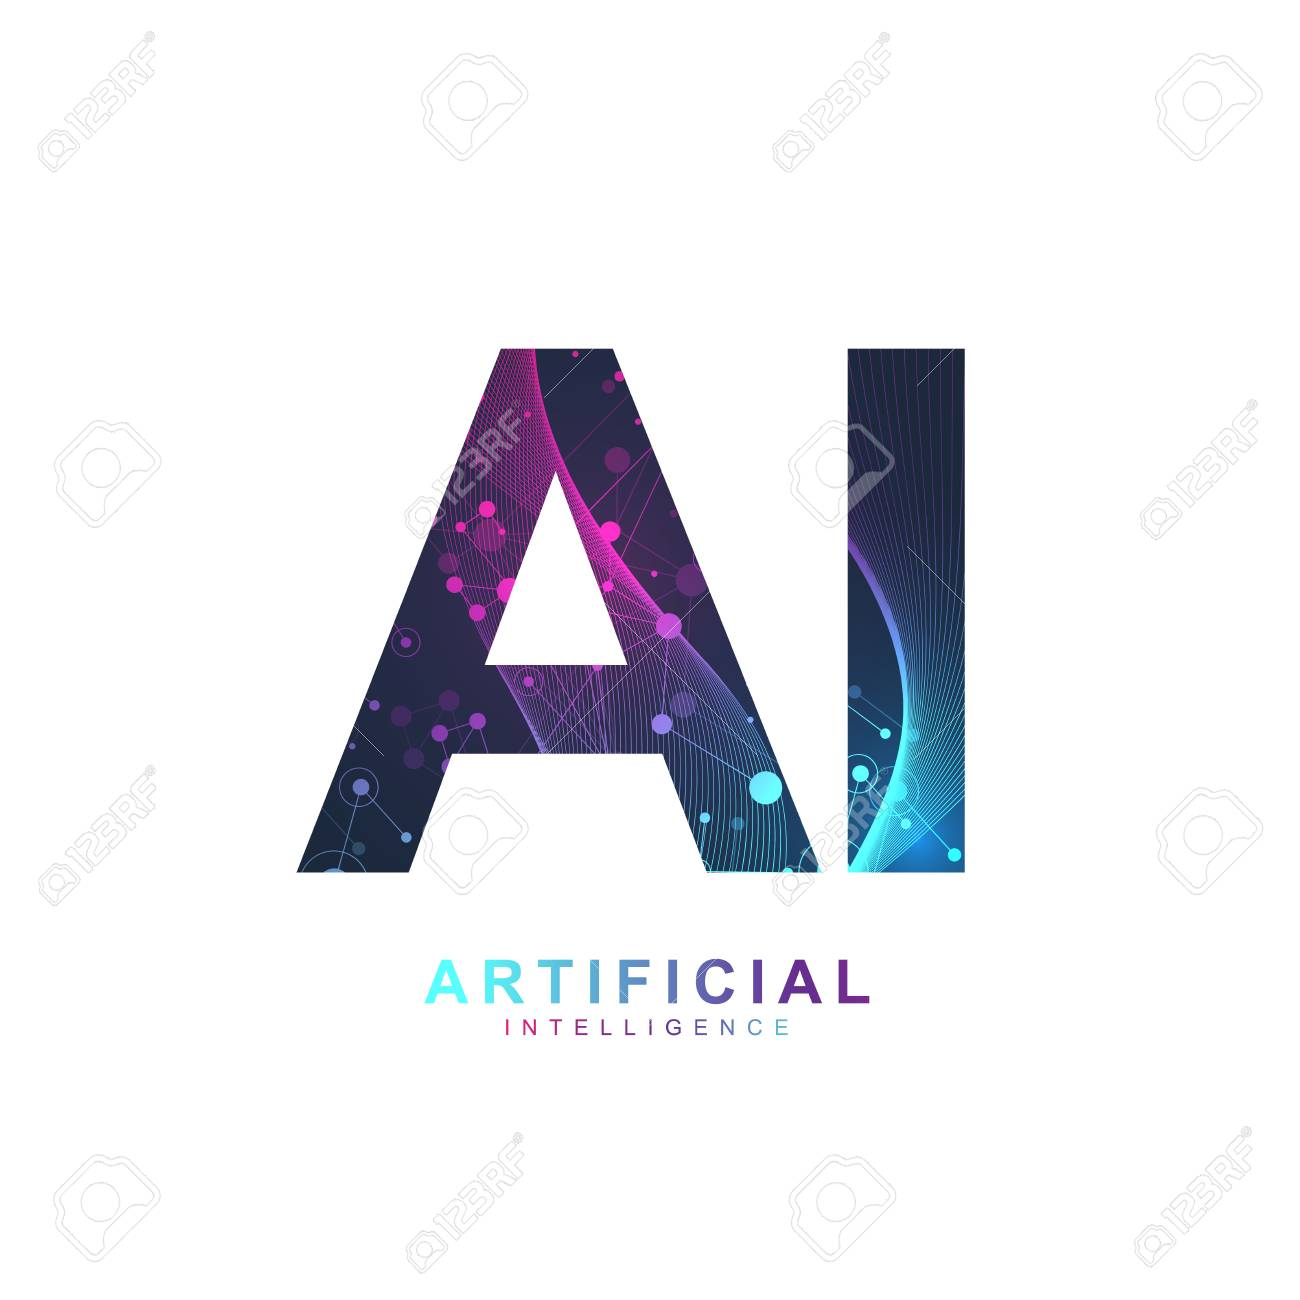 Artificial Intelligence Logo. Artificial Intelligence and Machine Learning Concept. Vector symbol AI. Neural networks and another modern technologies concepts. Technology sci-fi concept - 100773831